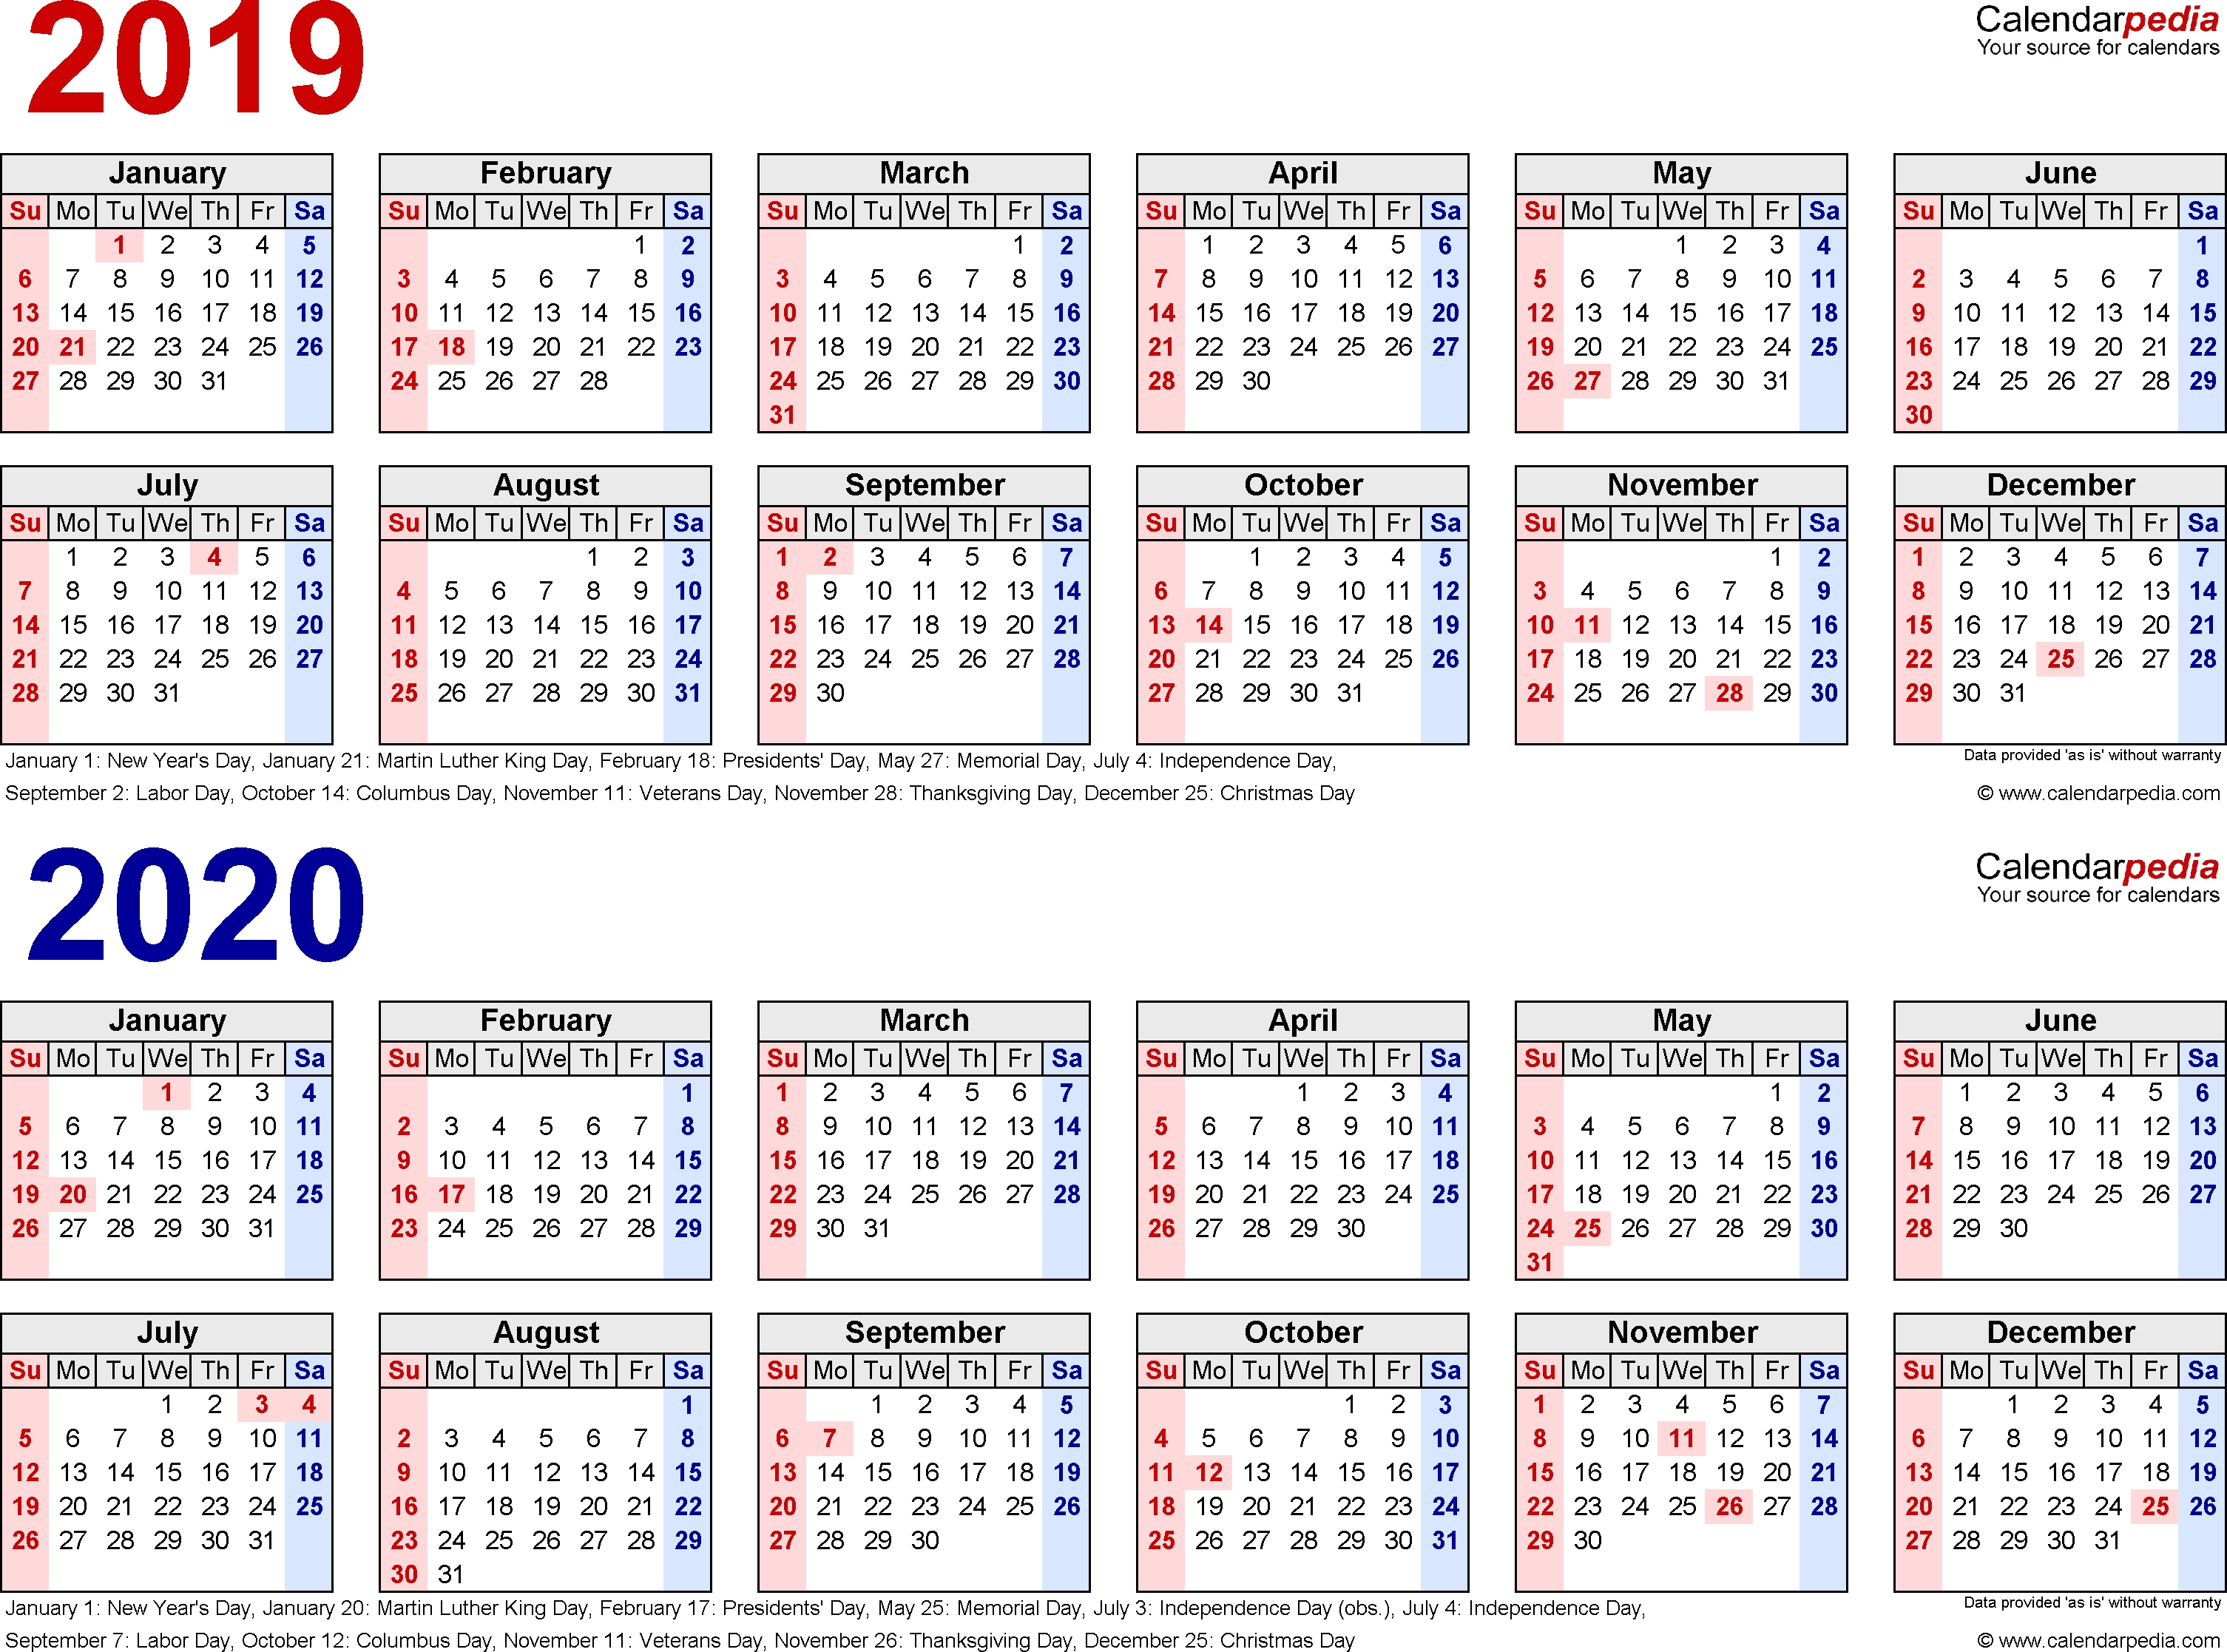 2019-2020 Calendar - Free Printable Two-Year Word Calendars intended for 2019/2020 Calendar On One Page